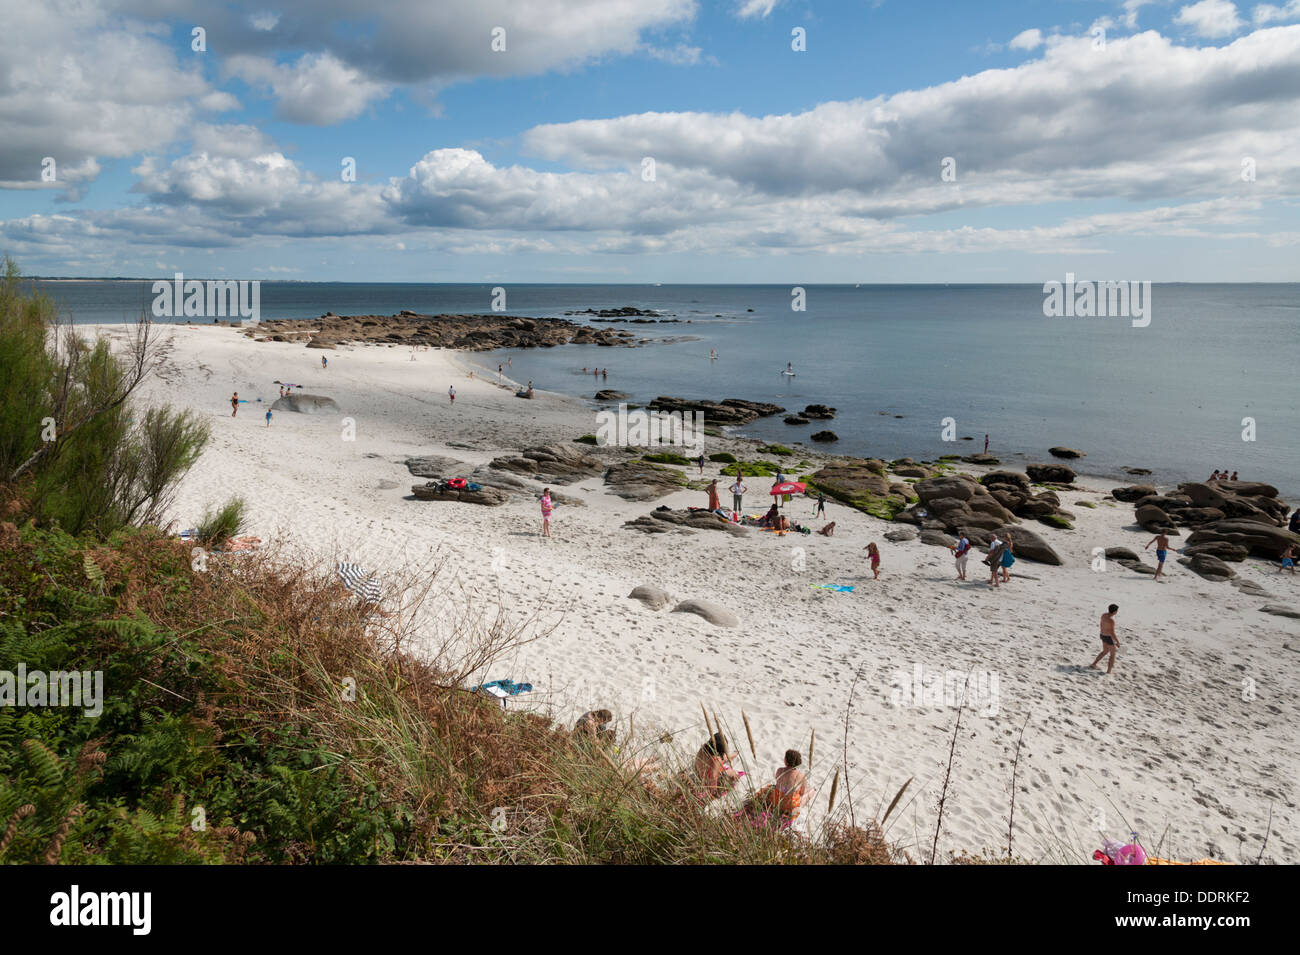 The beach with people relaxing at Beg Meil Brittany France - Stock Image